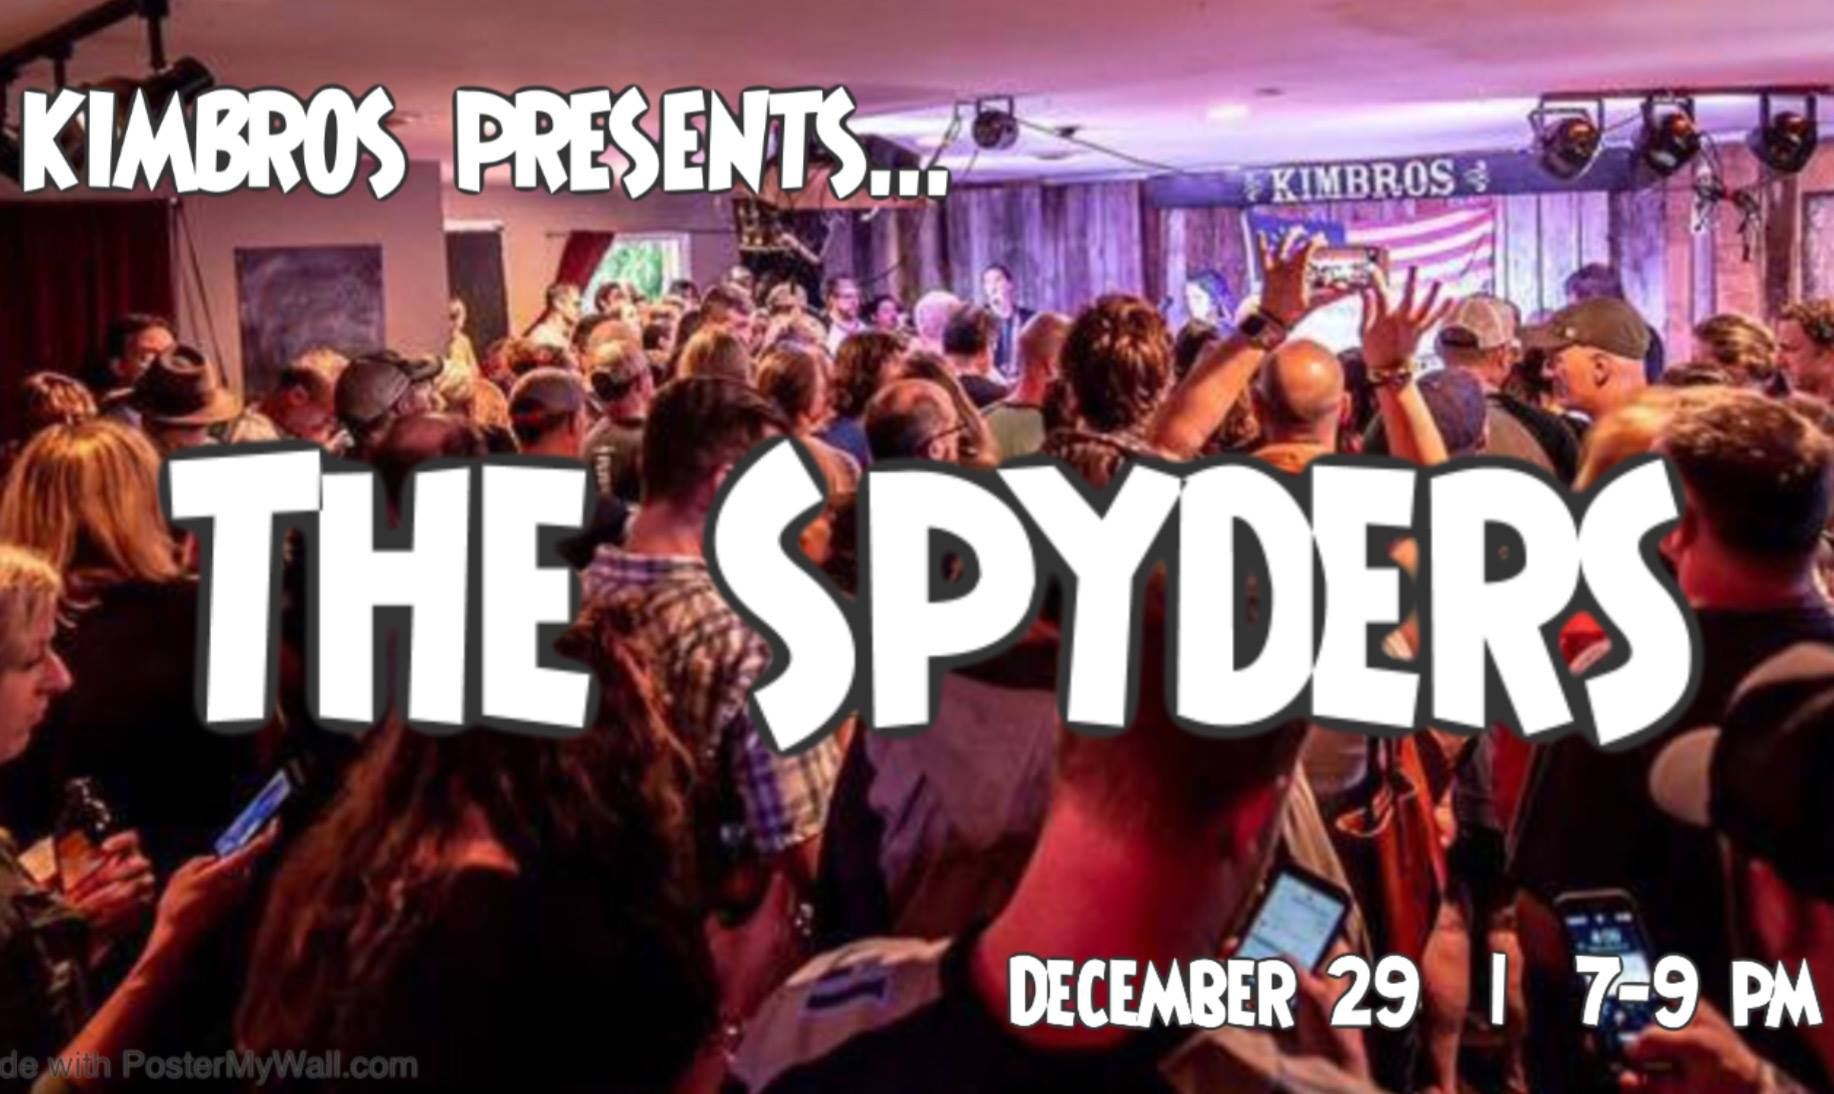 The Spyders Live at Kimbro's